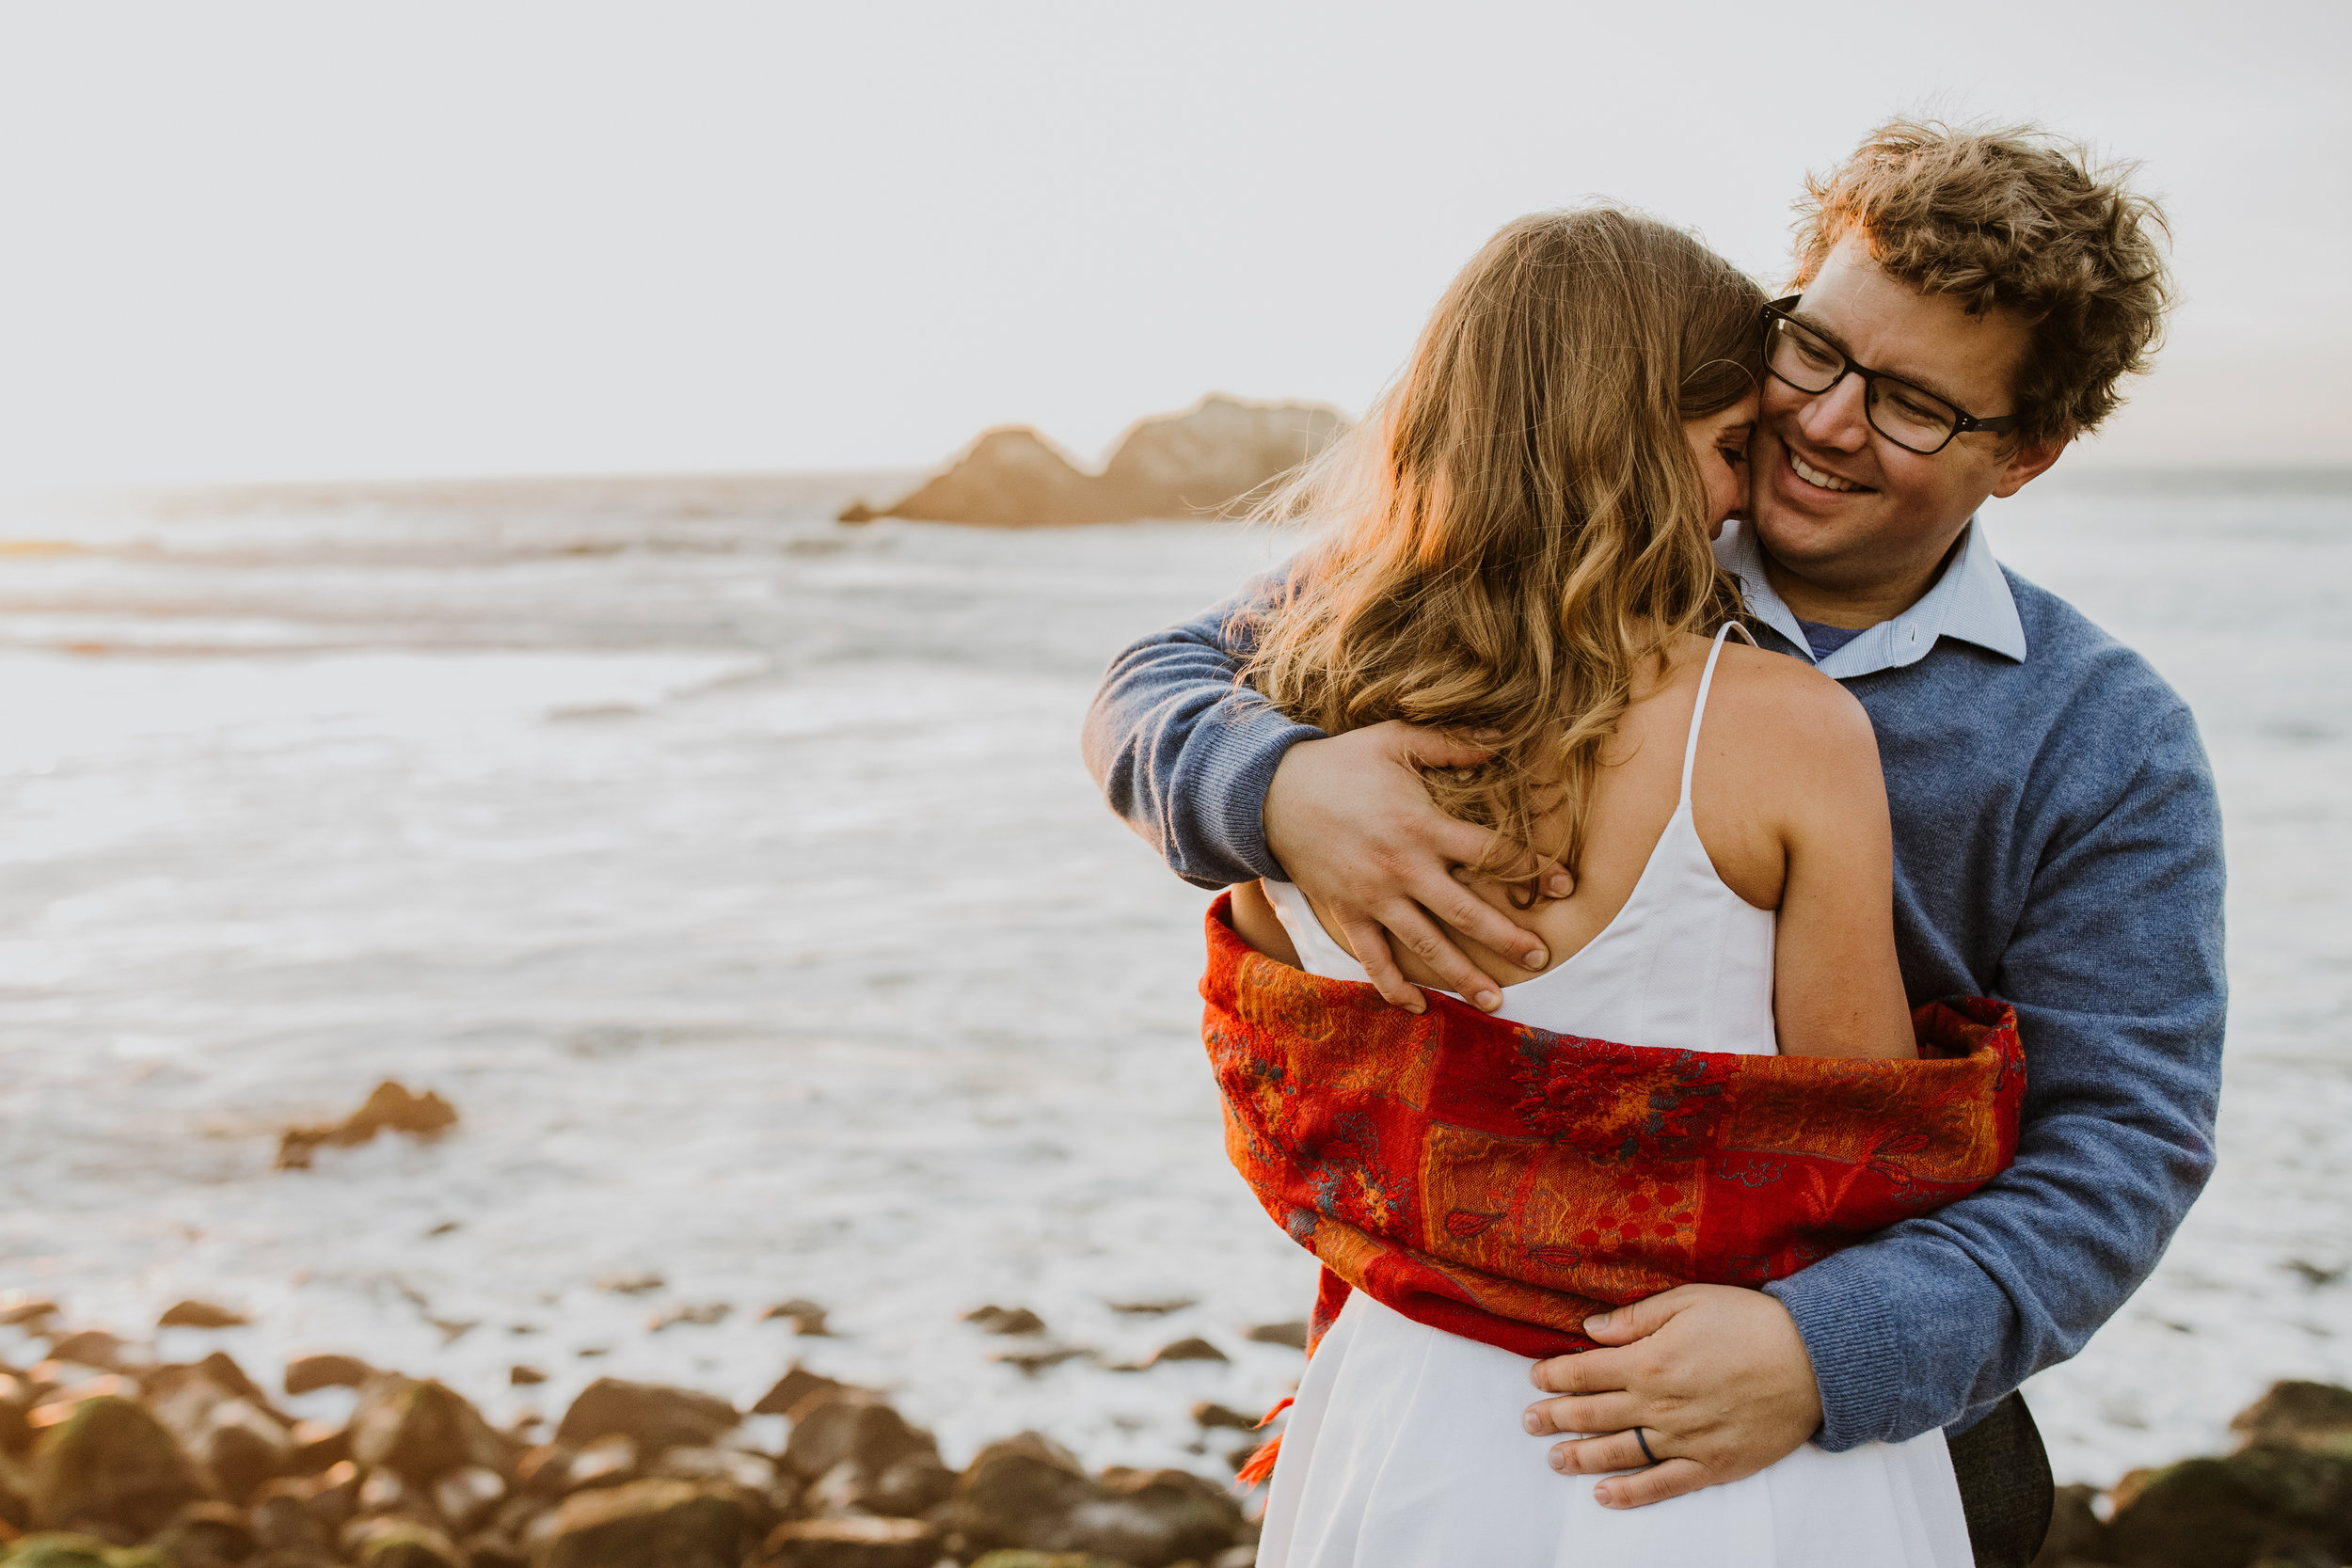 san francisco bay area photographer bre thurston | pacific coast outdoor engagement shoot | happy couple at sunset